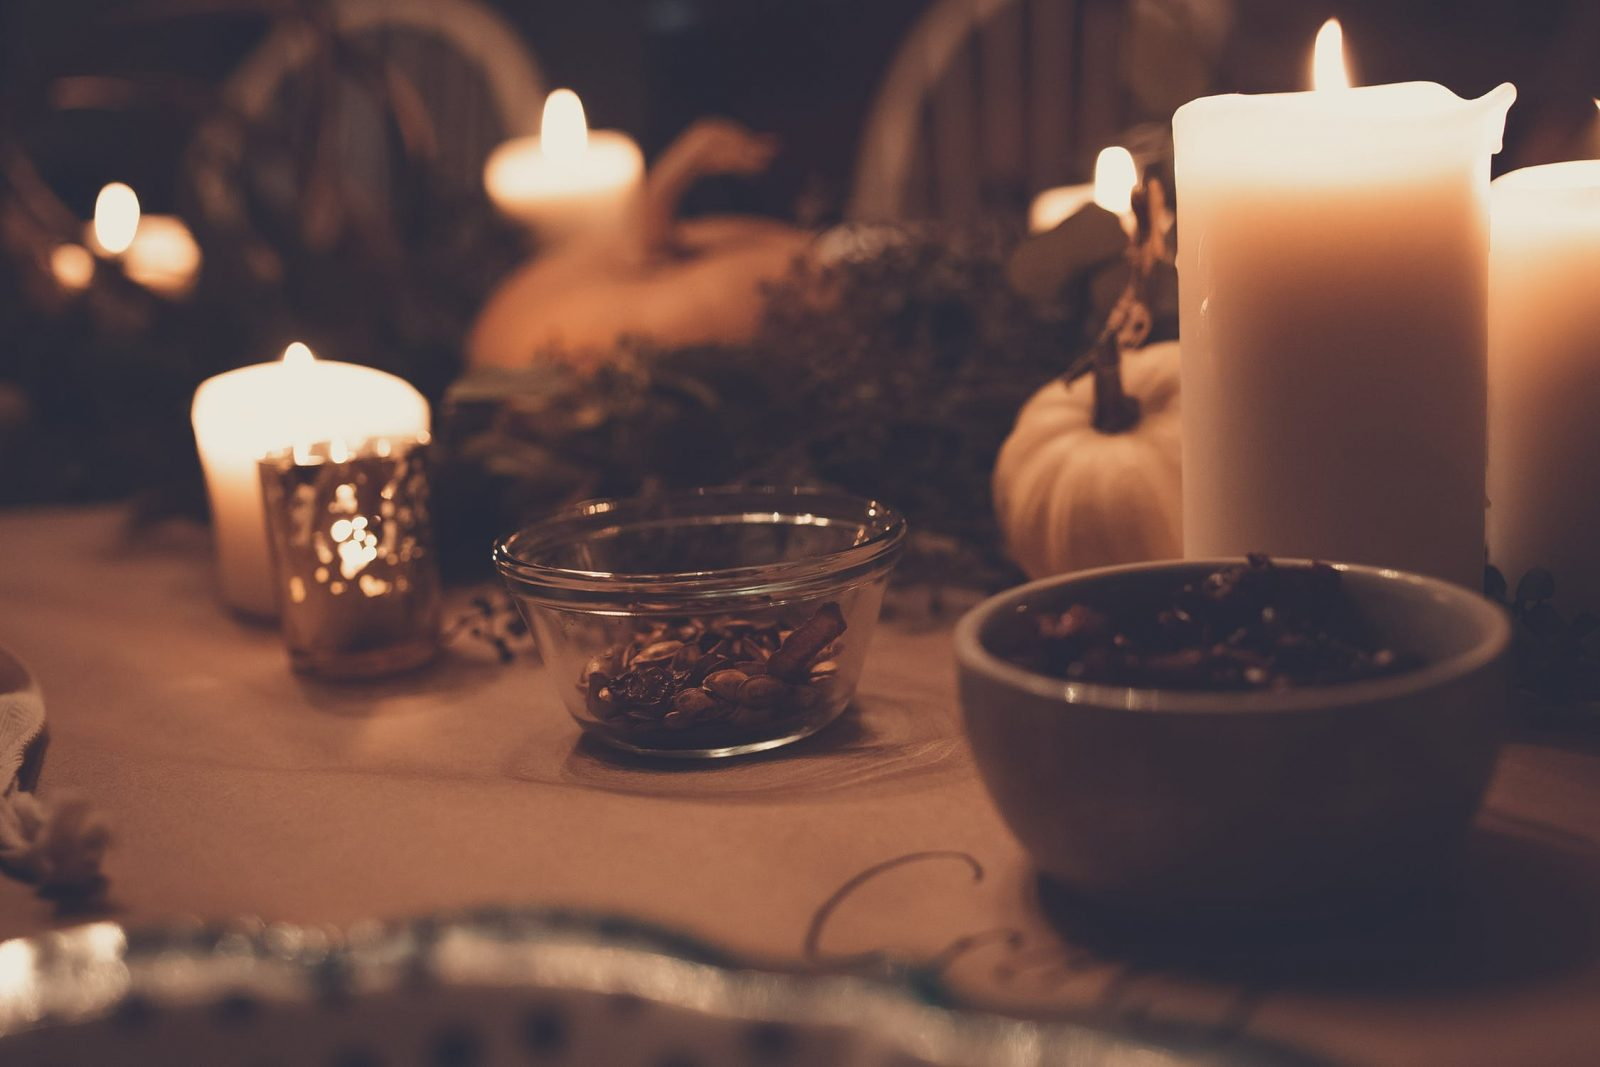 Pumpkins and Candles on Table - Make the Most of Your Awning This Winter - Awningsouth